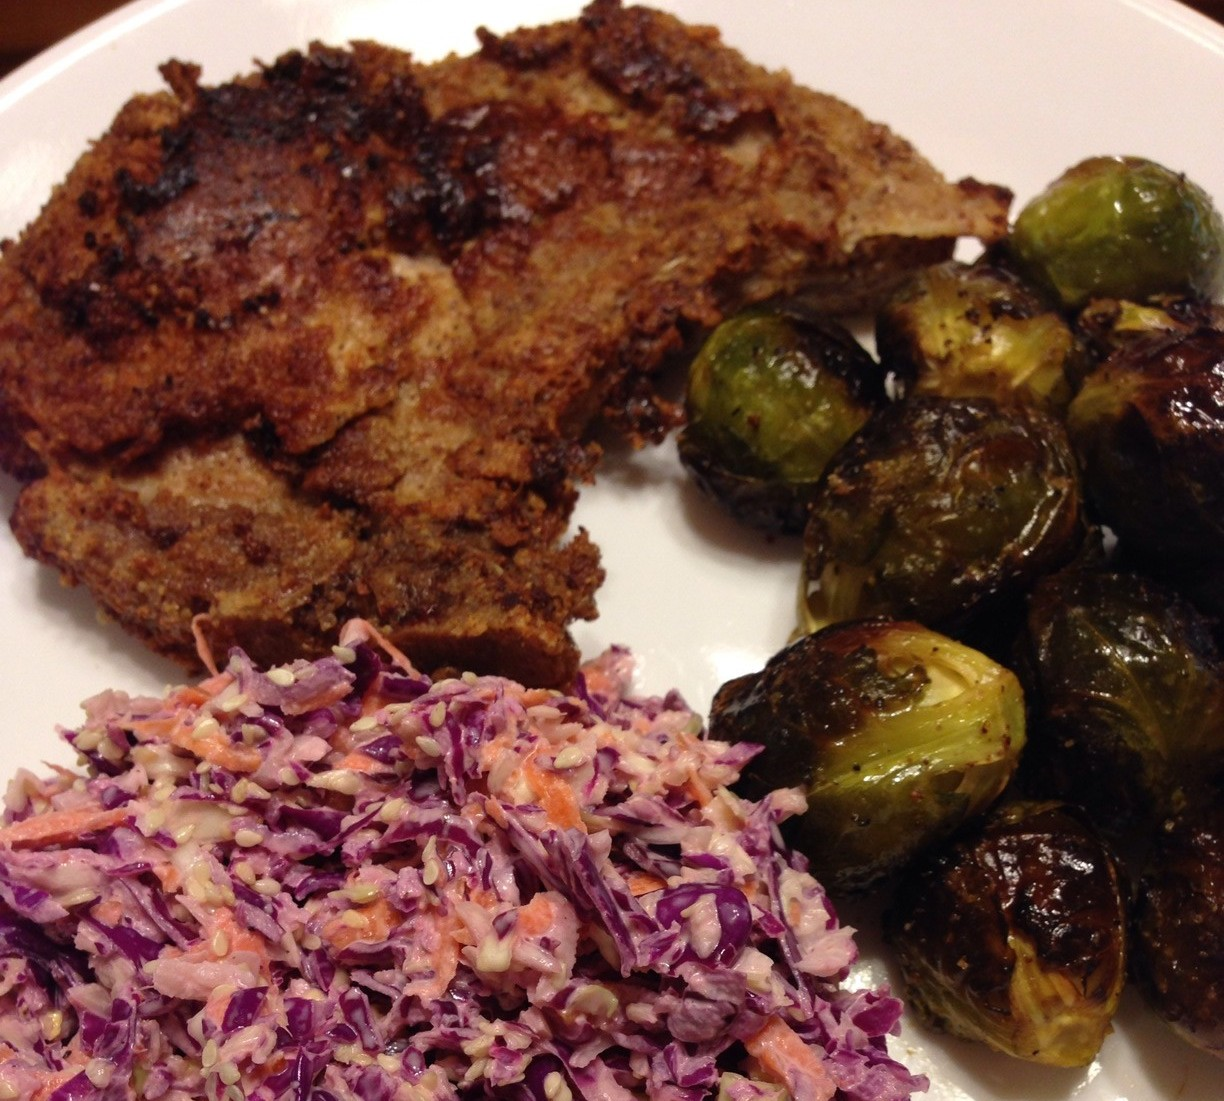 Almond Flour Fried Pork Chop Dinner